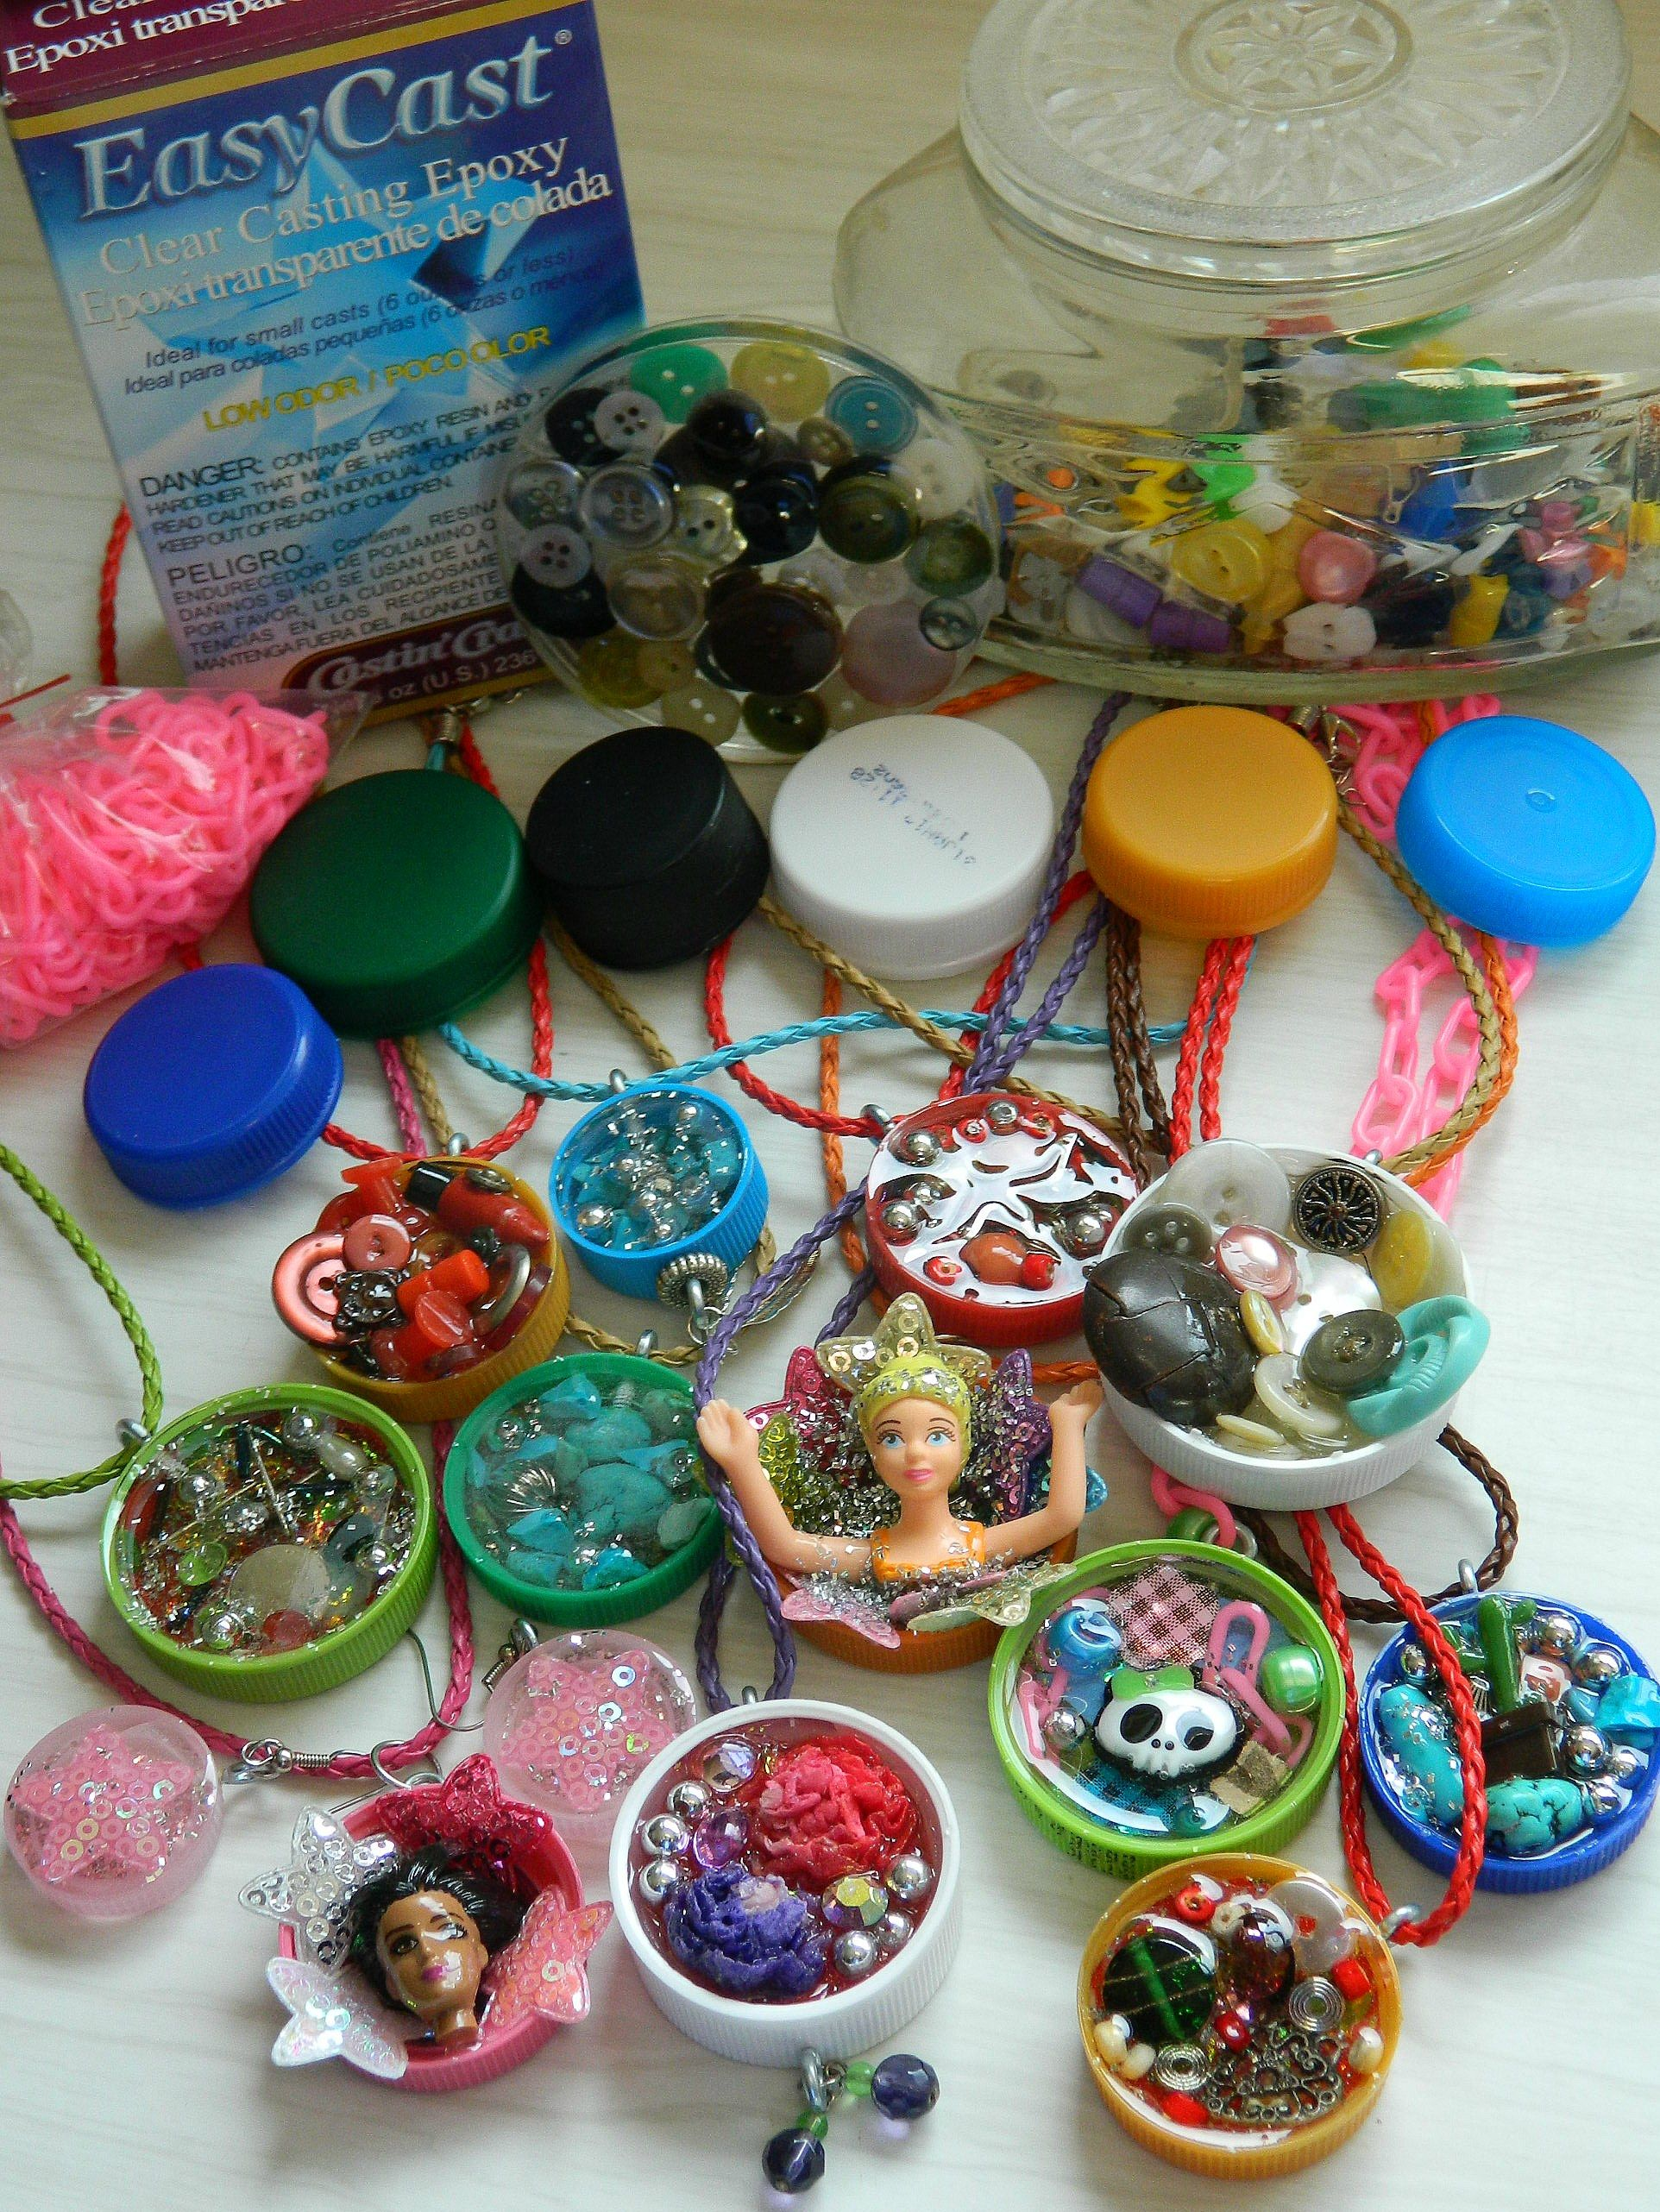 Recycled Stuff Necklaces Collect Plastic Bottle Caps